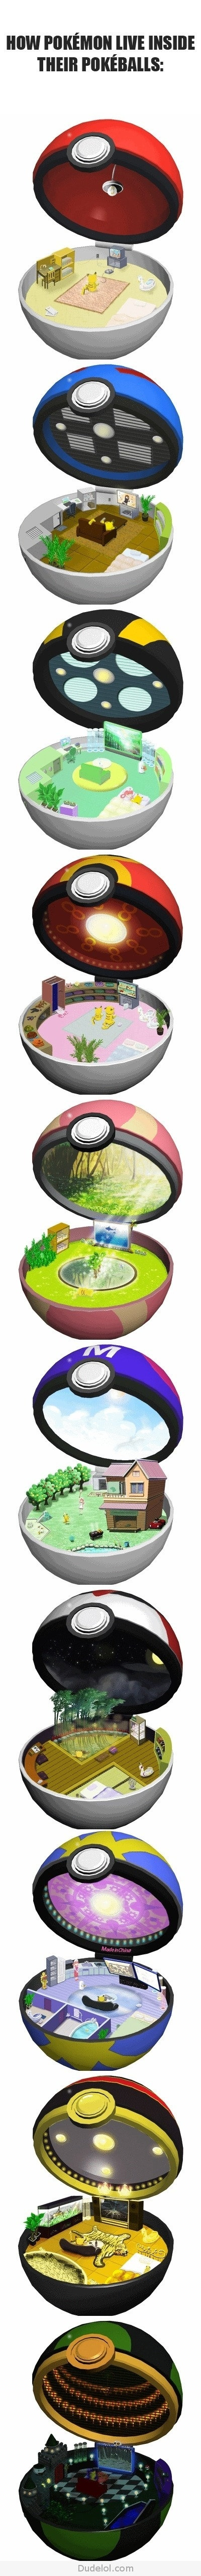 I Would Totally Love One Of These In My Backyard Anime Pinterest Backyard Pok 233 Mon And Anime